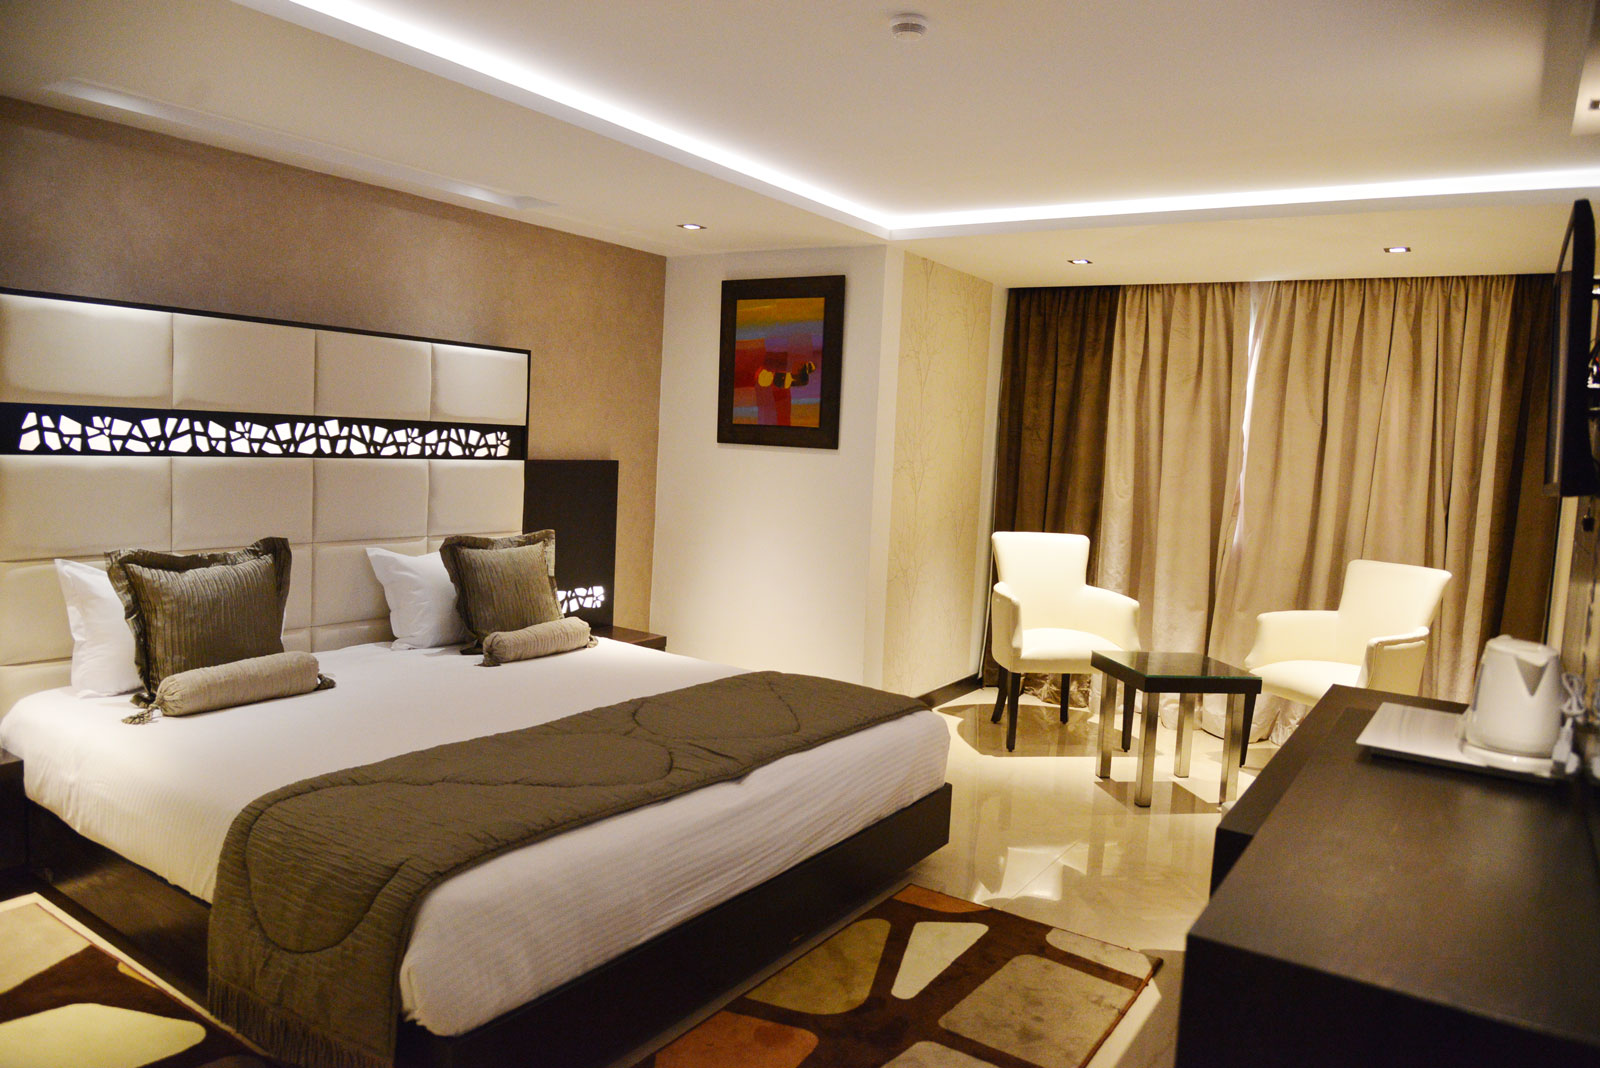 Offres Hotel Samarons Tunis Sejour Et Residence A Tunis